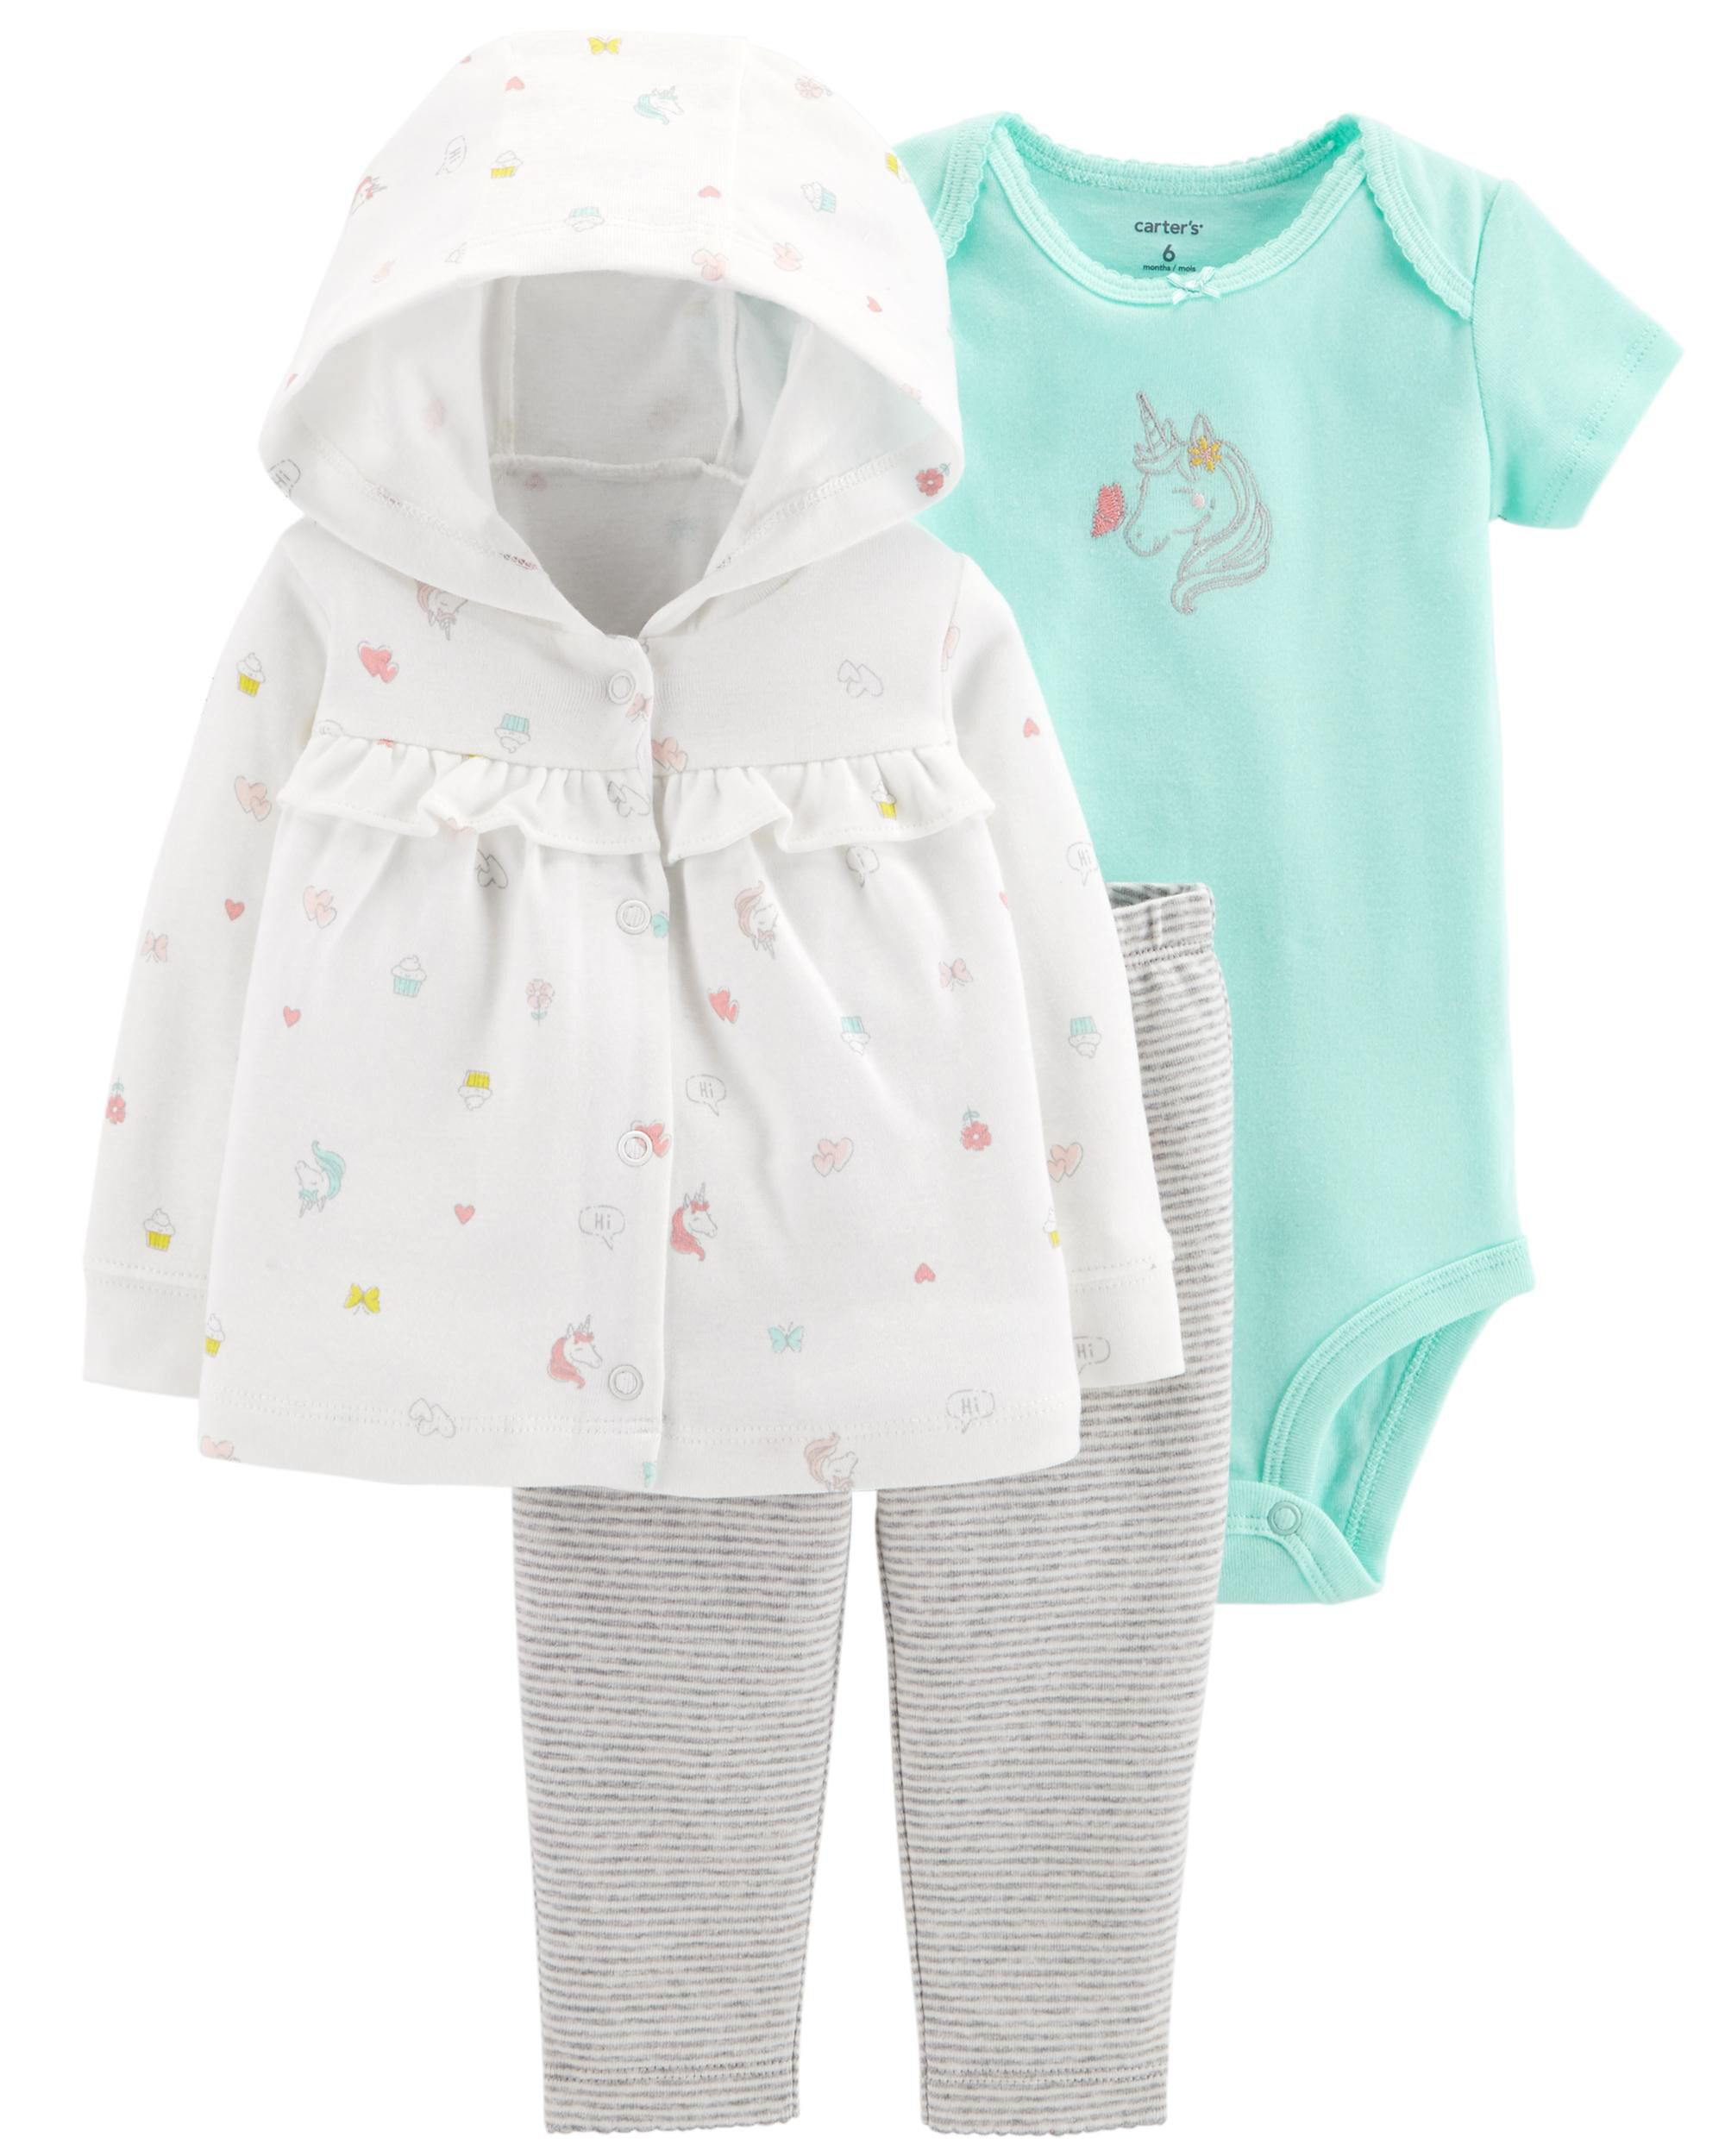 edbe3497a1a2 3-Piece Little Cardigan Set ...